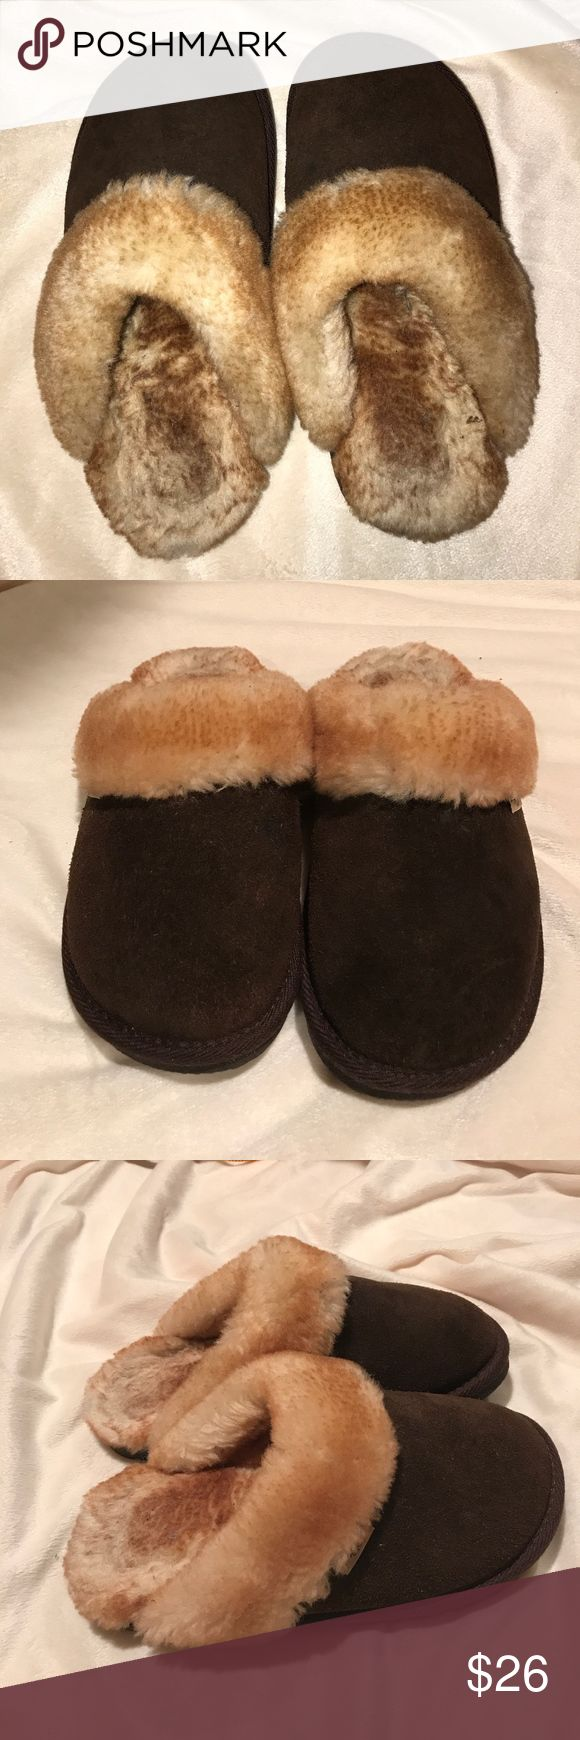 Suede and shearling slippers Dark brown shearling lining and suede outer. Rubber soles. Lightly worn. Very soft and comfy. Size M. Fits a 7-8. Similar to UGG slippers Rj's Fuzzies Shoes Slippers